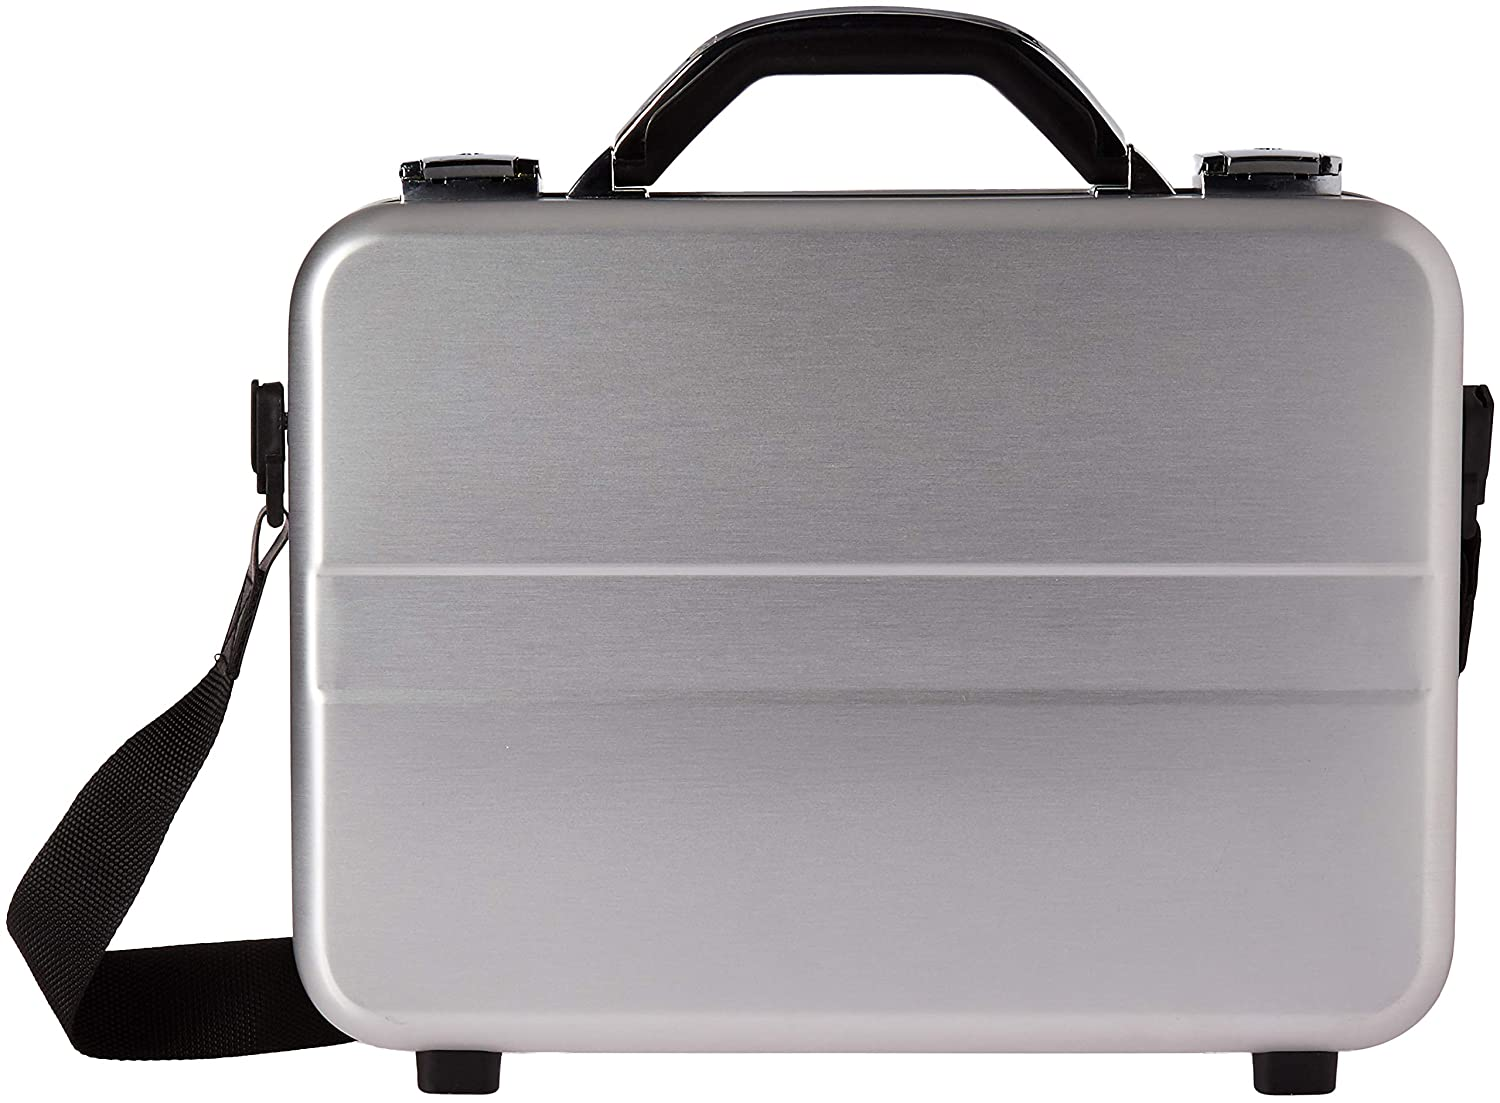 98c232676444 TZ Case International Tz Compact Molded Aluminum Attache Case with Shoulder  Strap, Silver